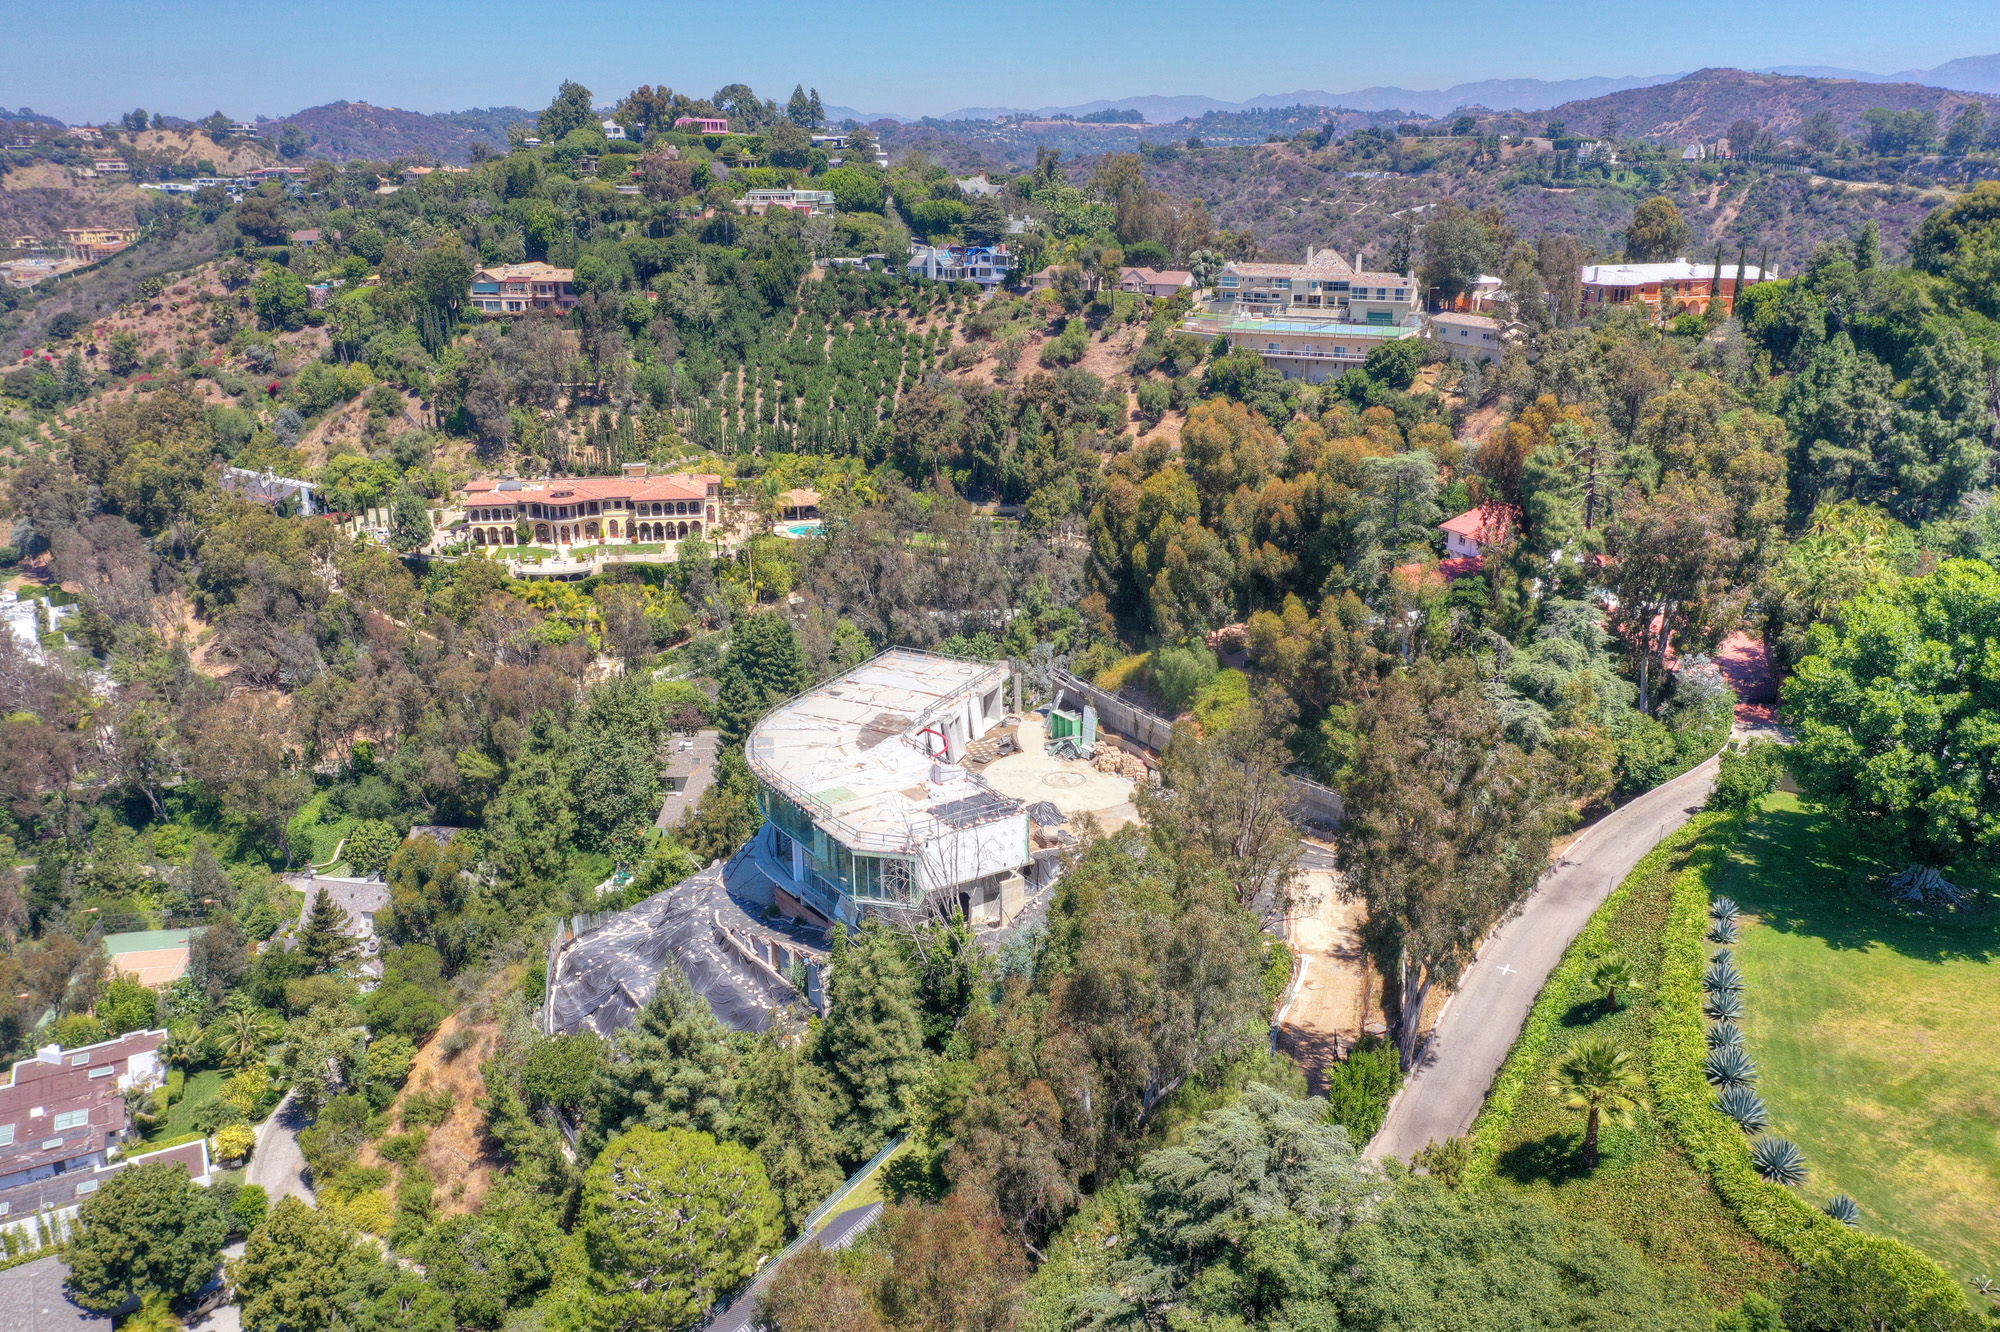 Mohamed Hadid's $8-Million Bel-Air Development To Be Auctioned